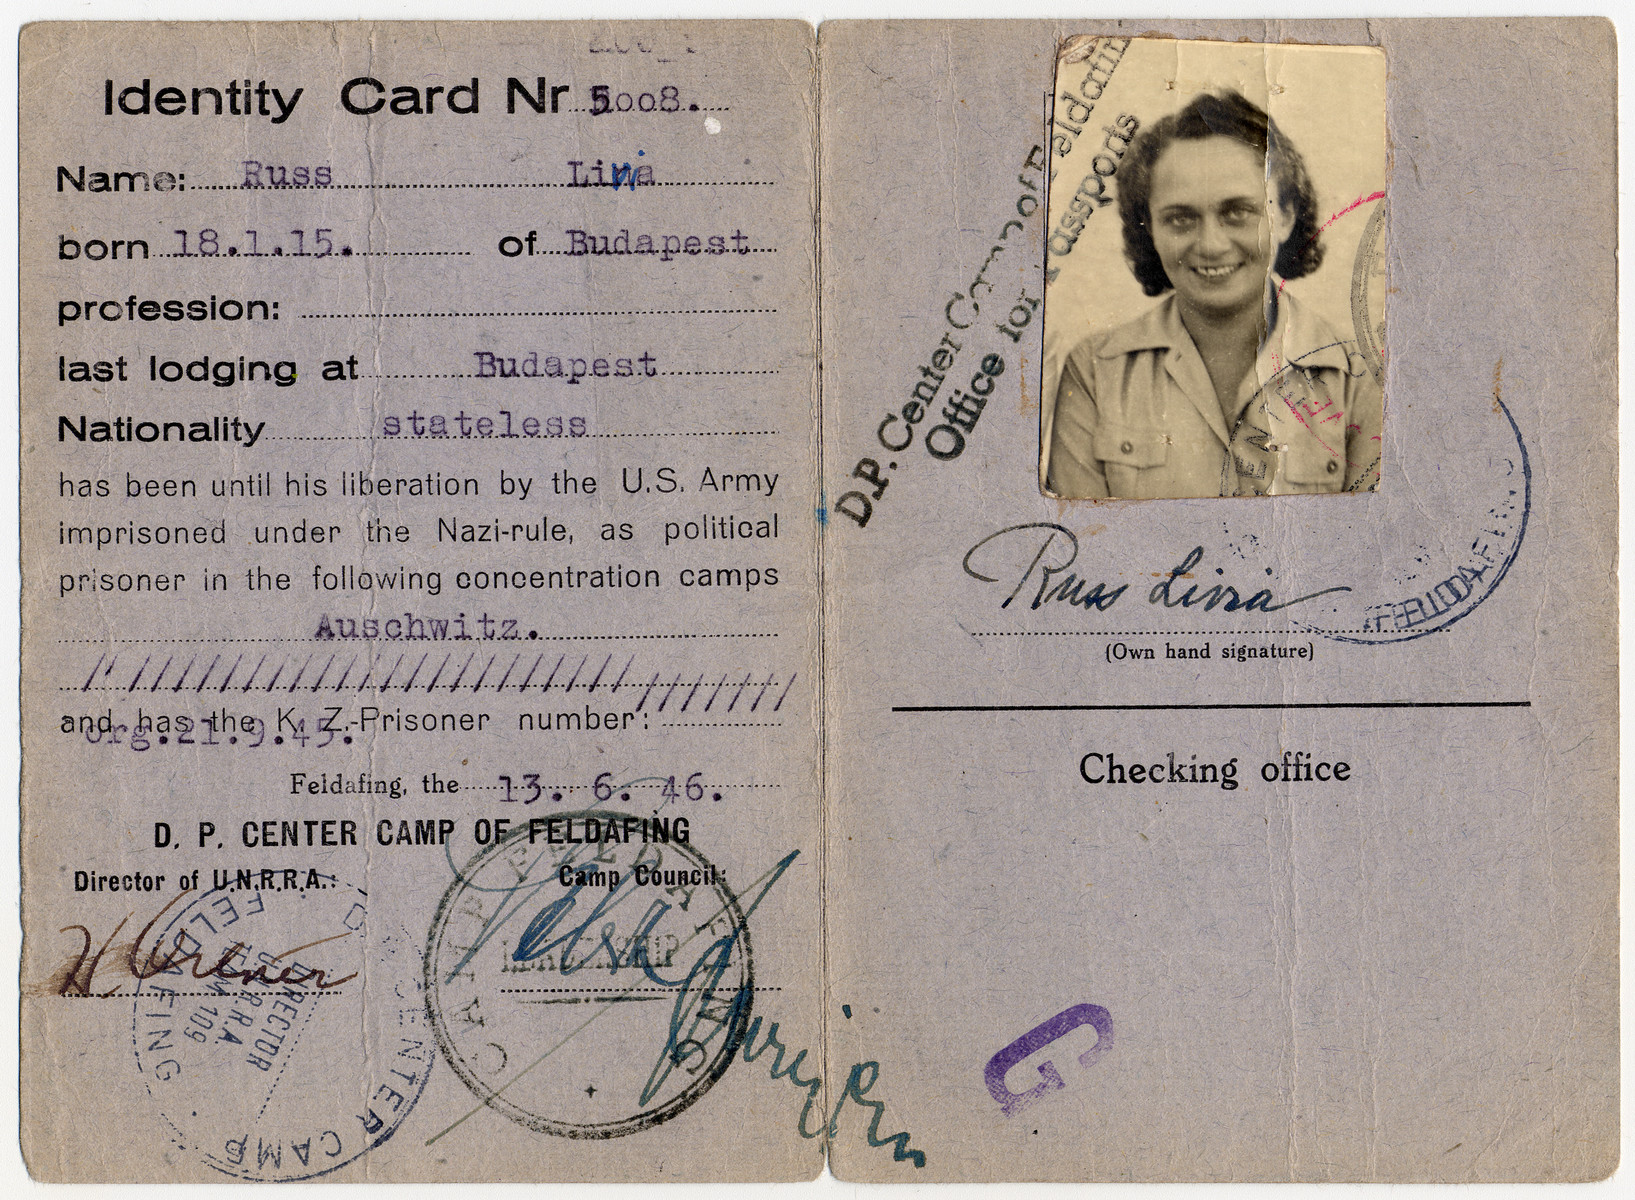 Identification card issued to Livia Russ in the Feldafing displaced persons' camp.